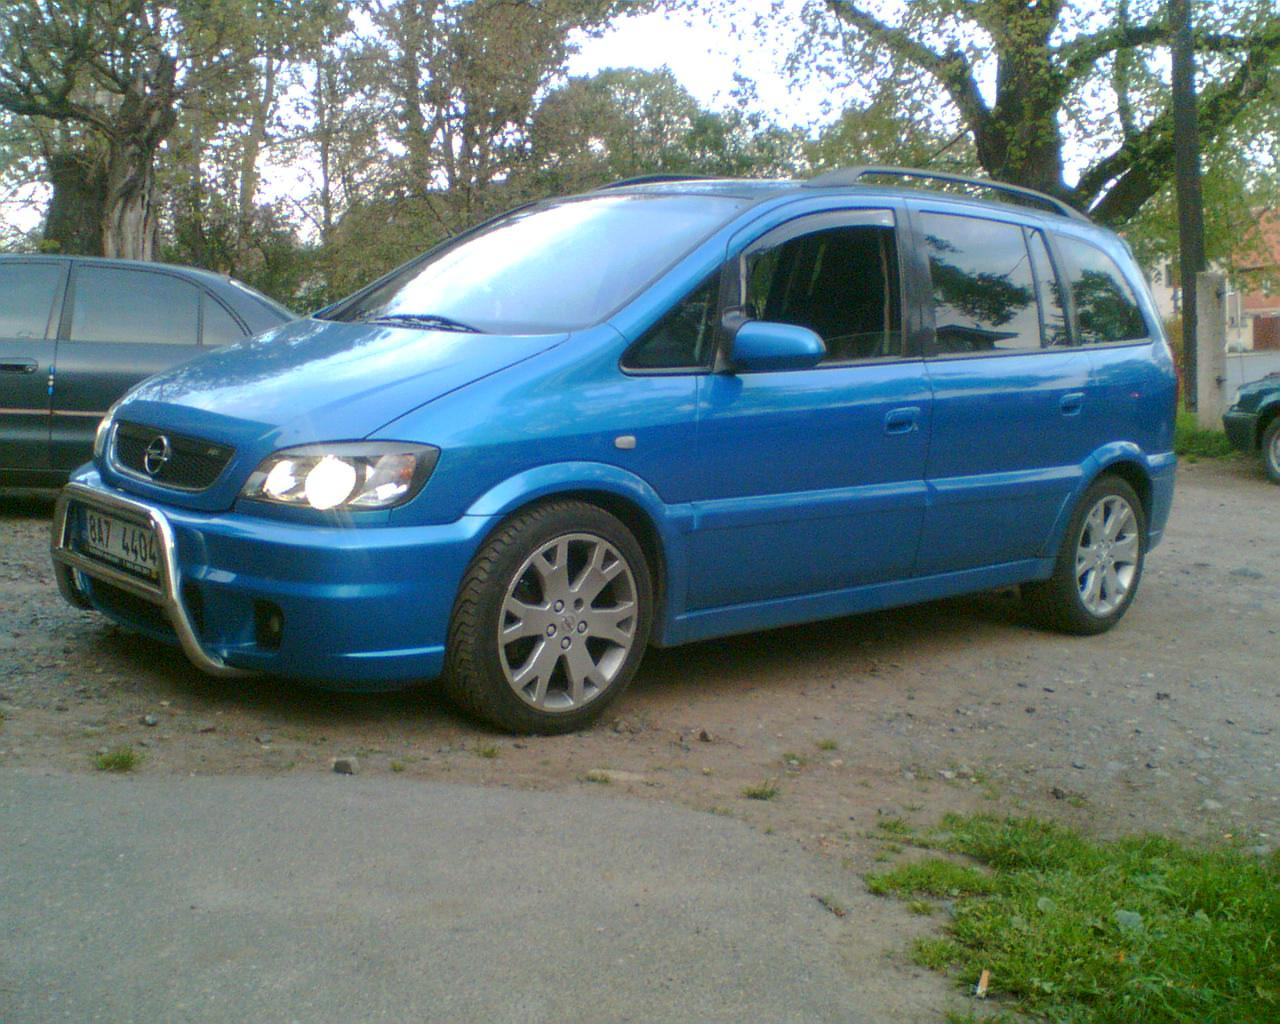 2003 opel zafira a generation 1 2 0 122 cui gasoline. Black Bedroom Furniture Sets. Home Design Ideas